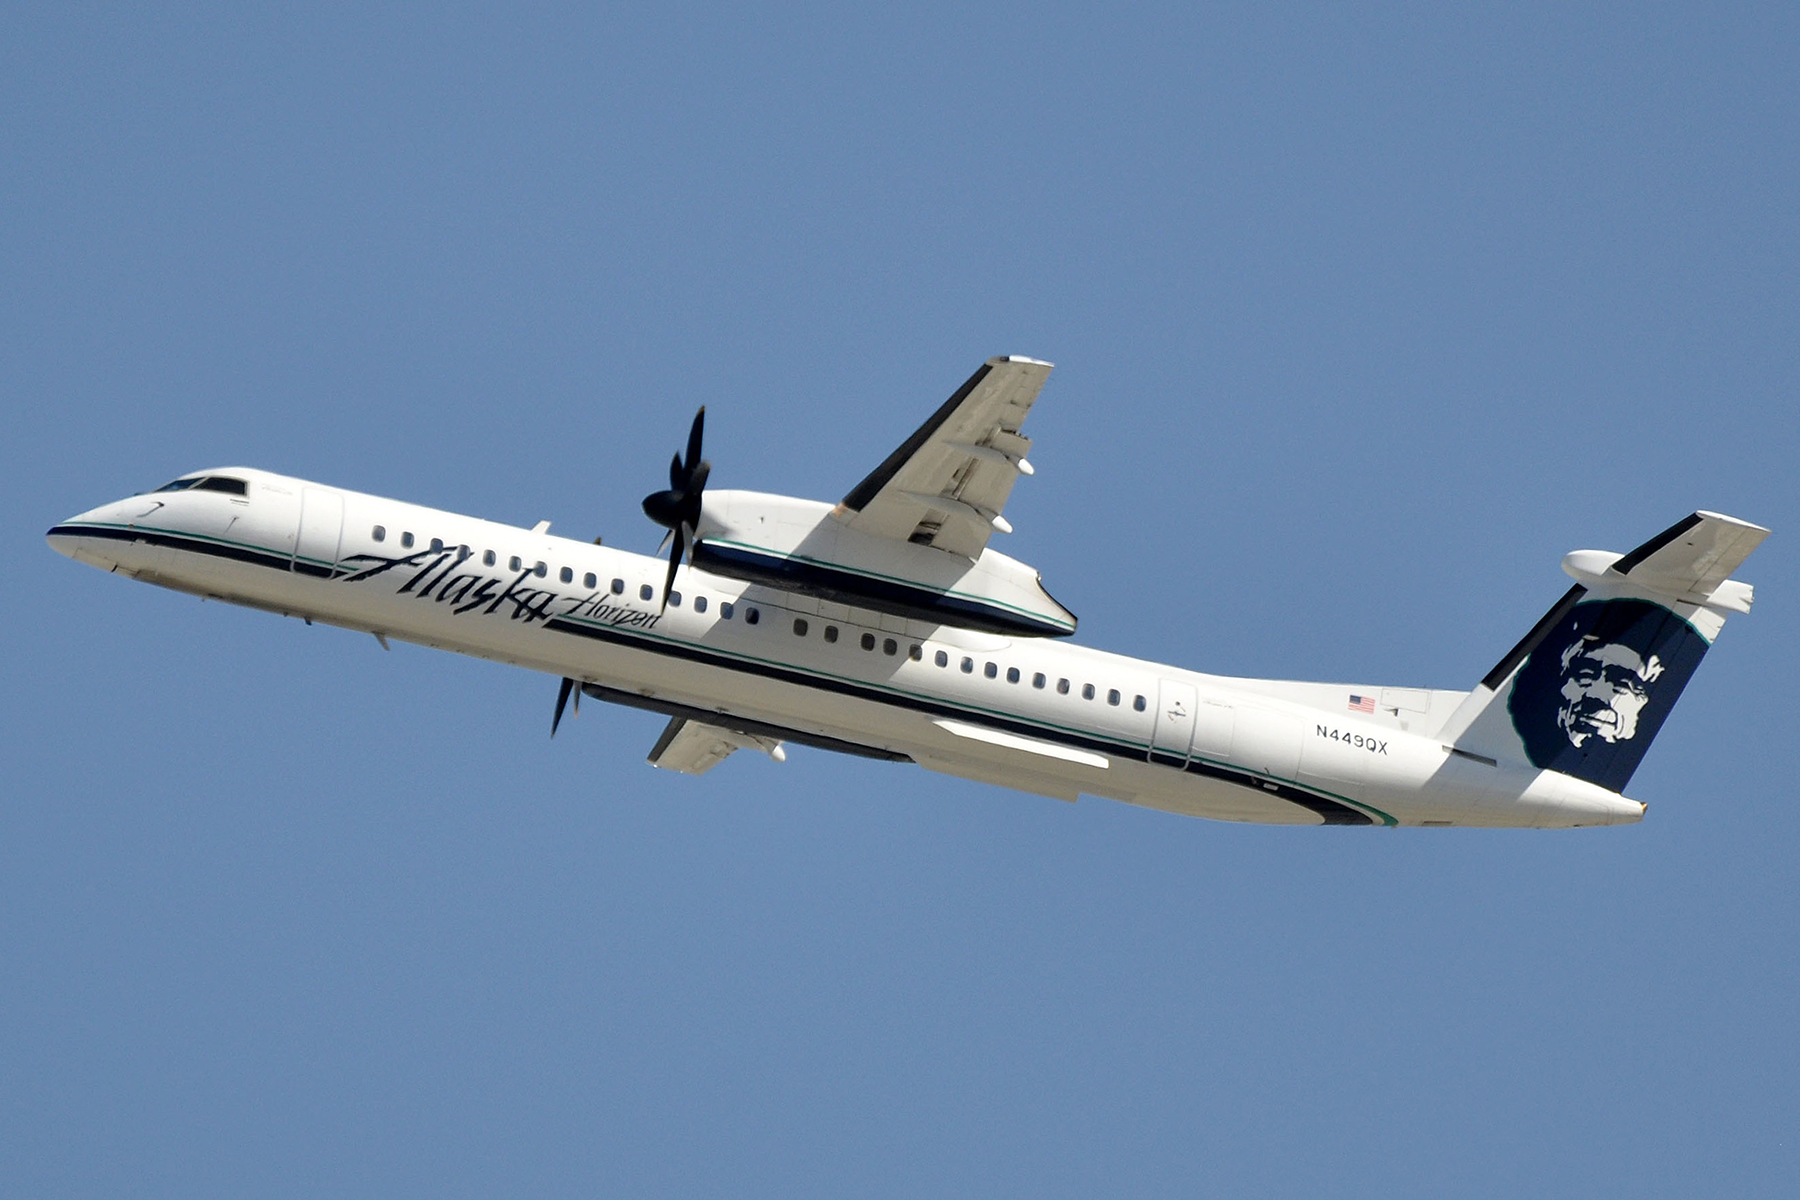 The Horizon Air Bombardier Dash 8 Q400, part of Alaska Air's fleet, which was commandeered by Russell.